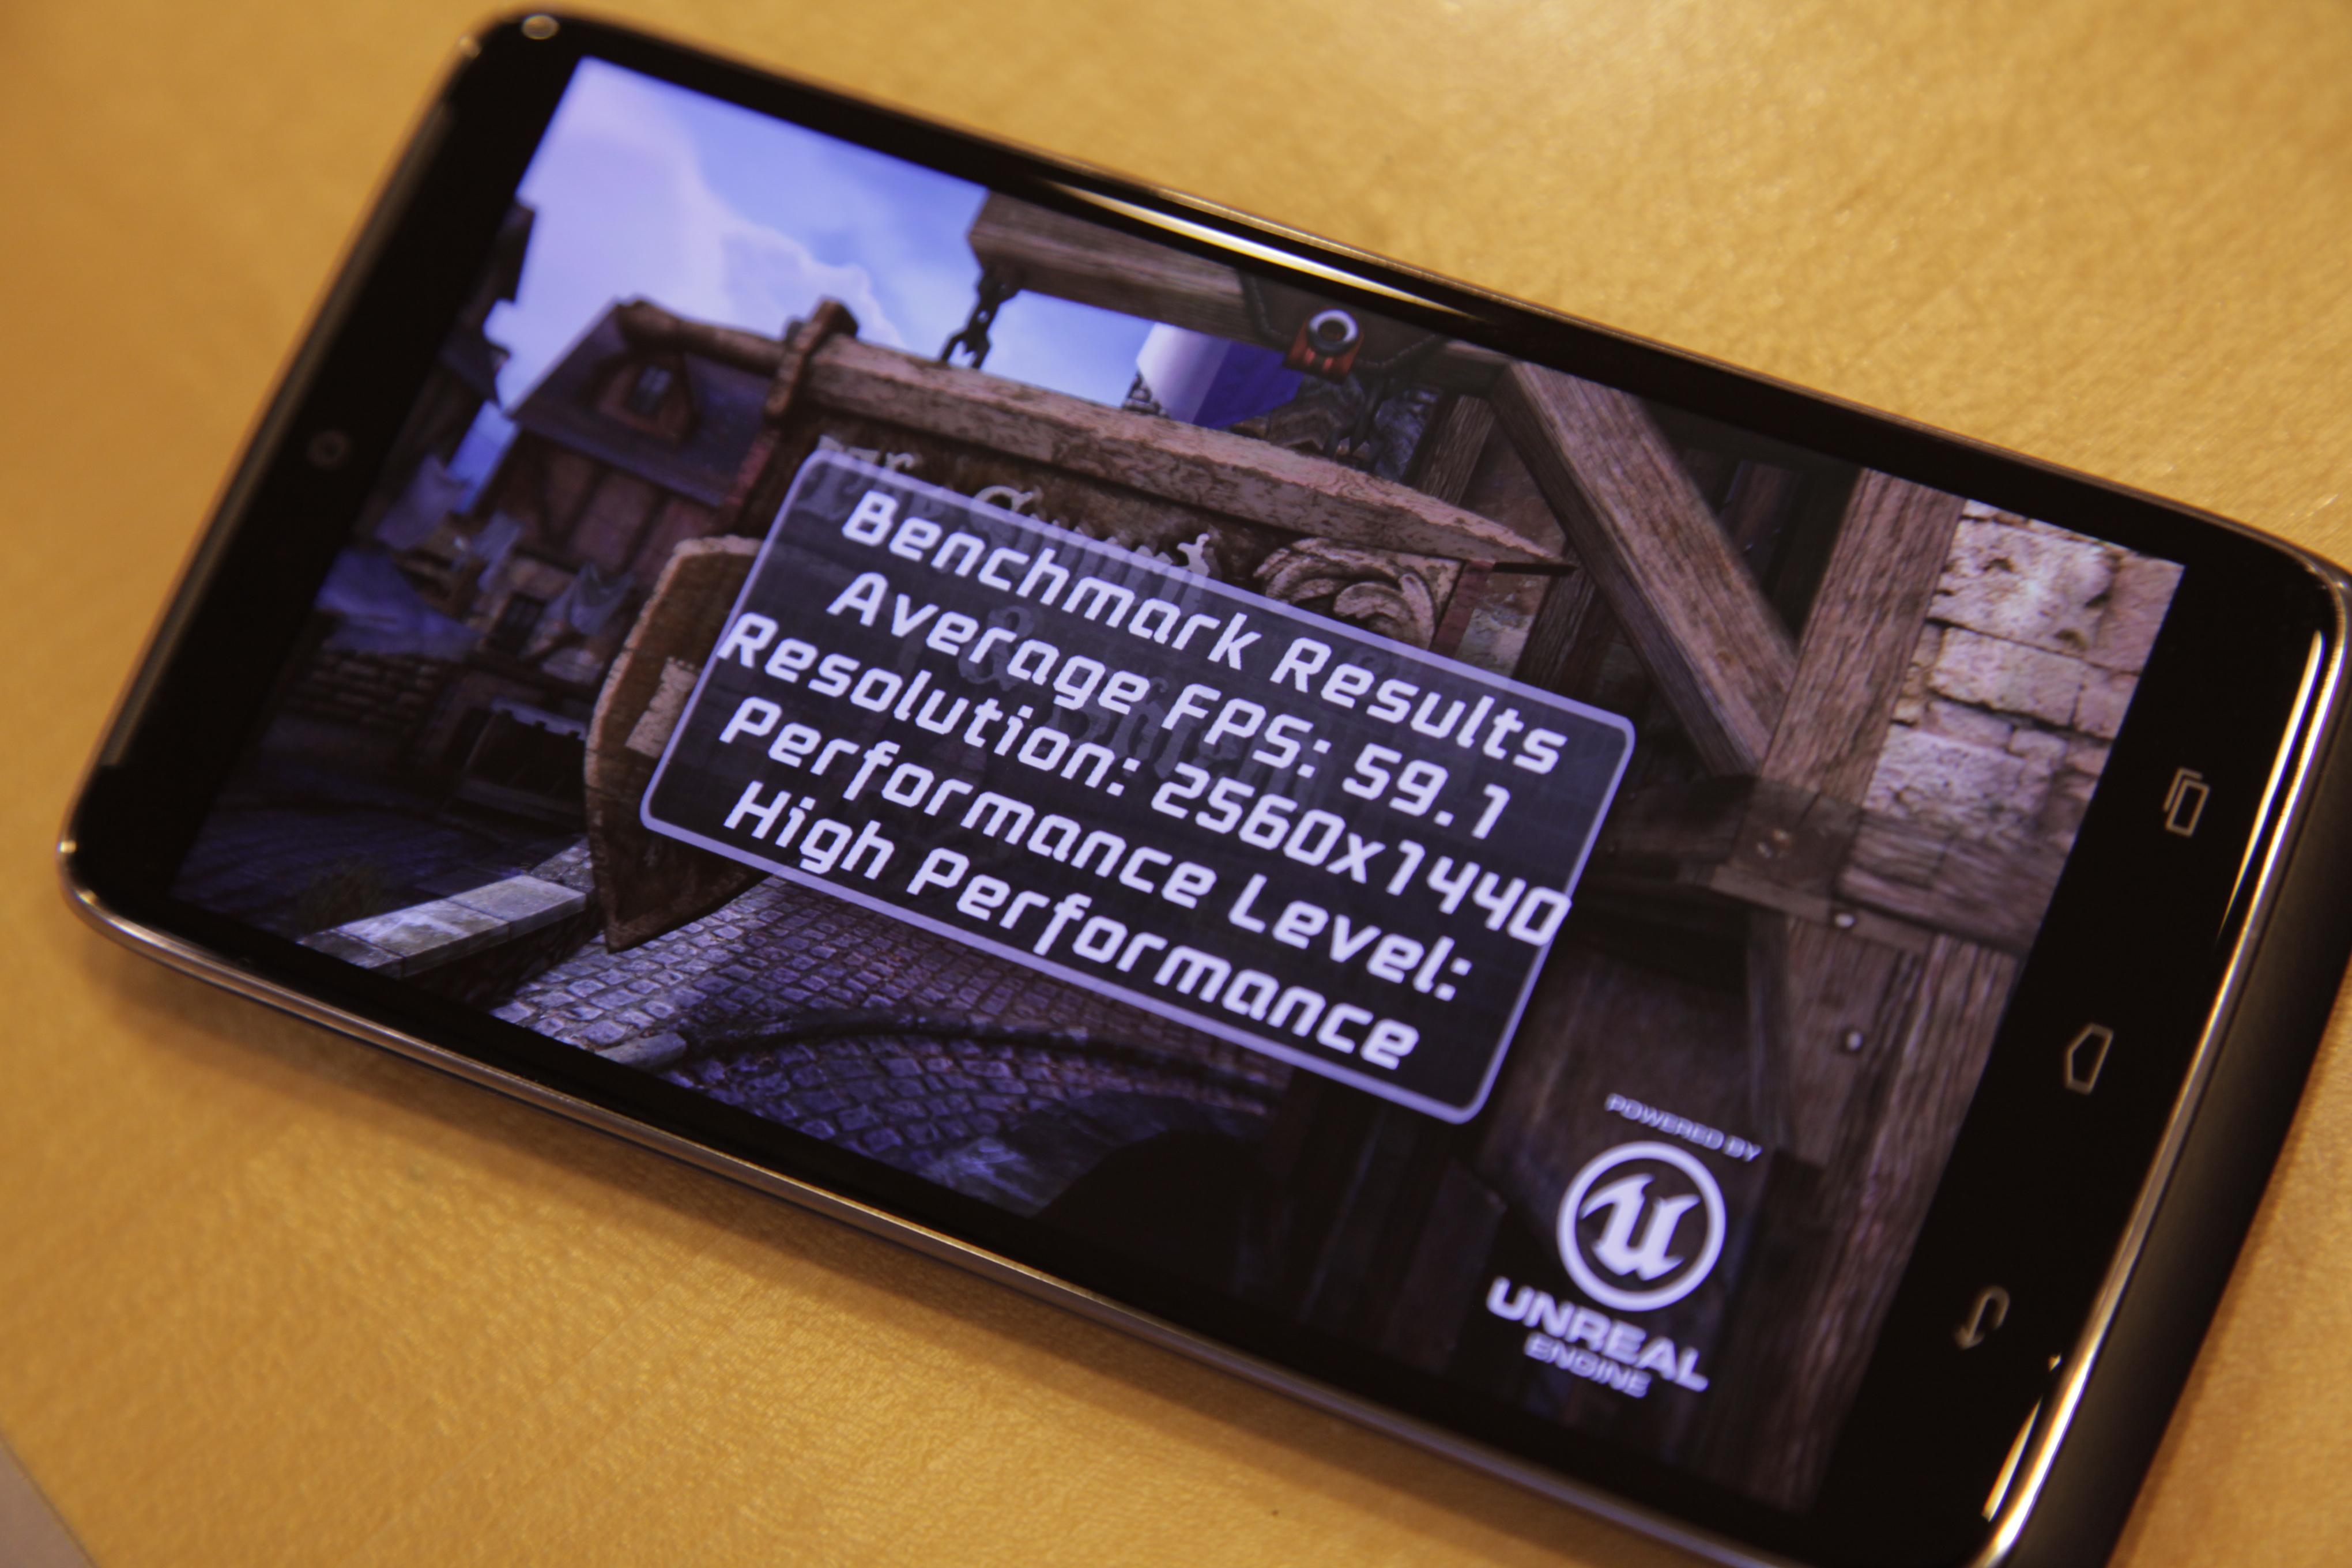 Motorola Droid Turbo Benchmark